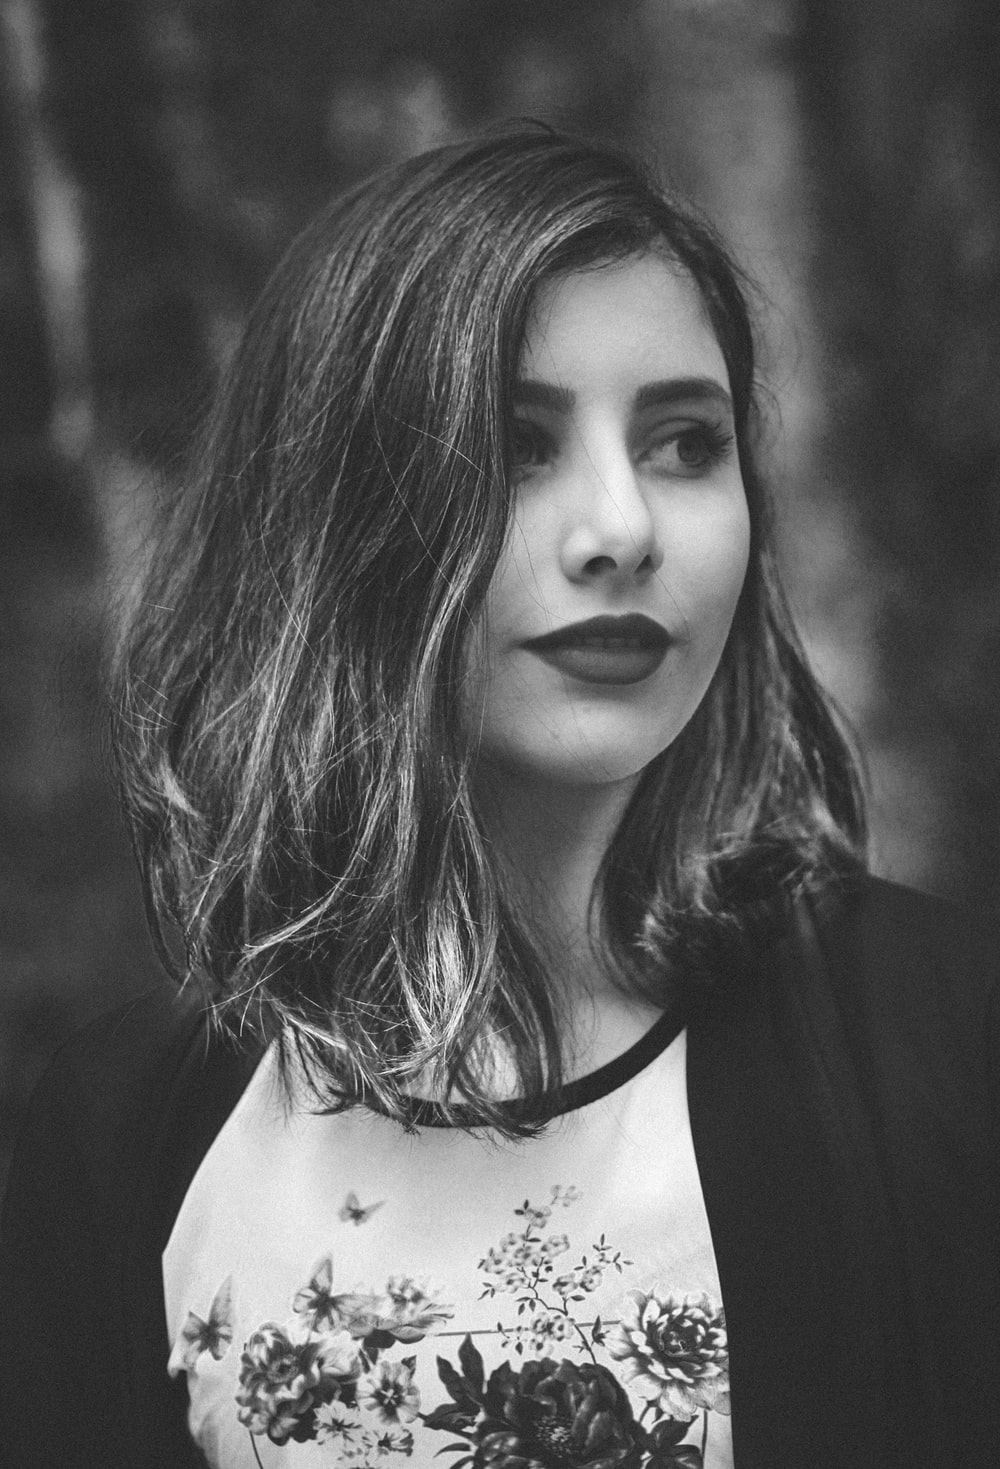 grayscale photography of woman wearing cardigan